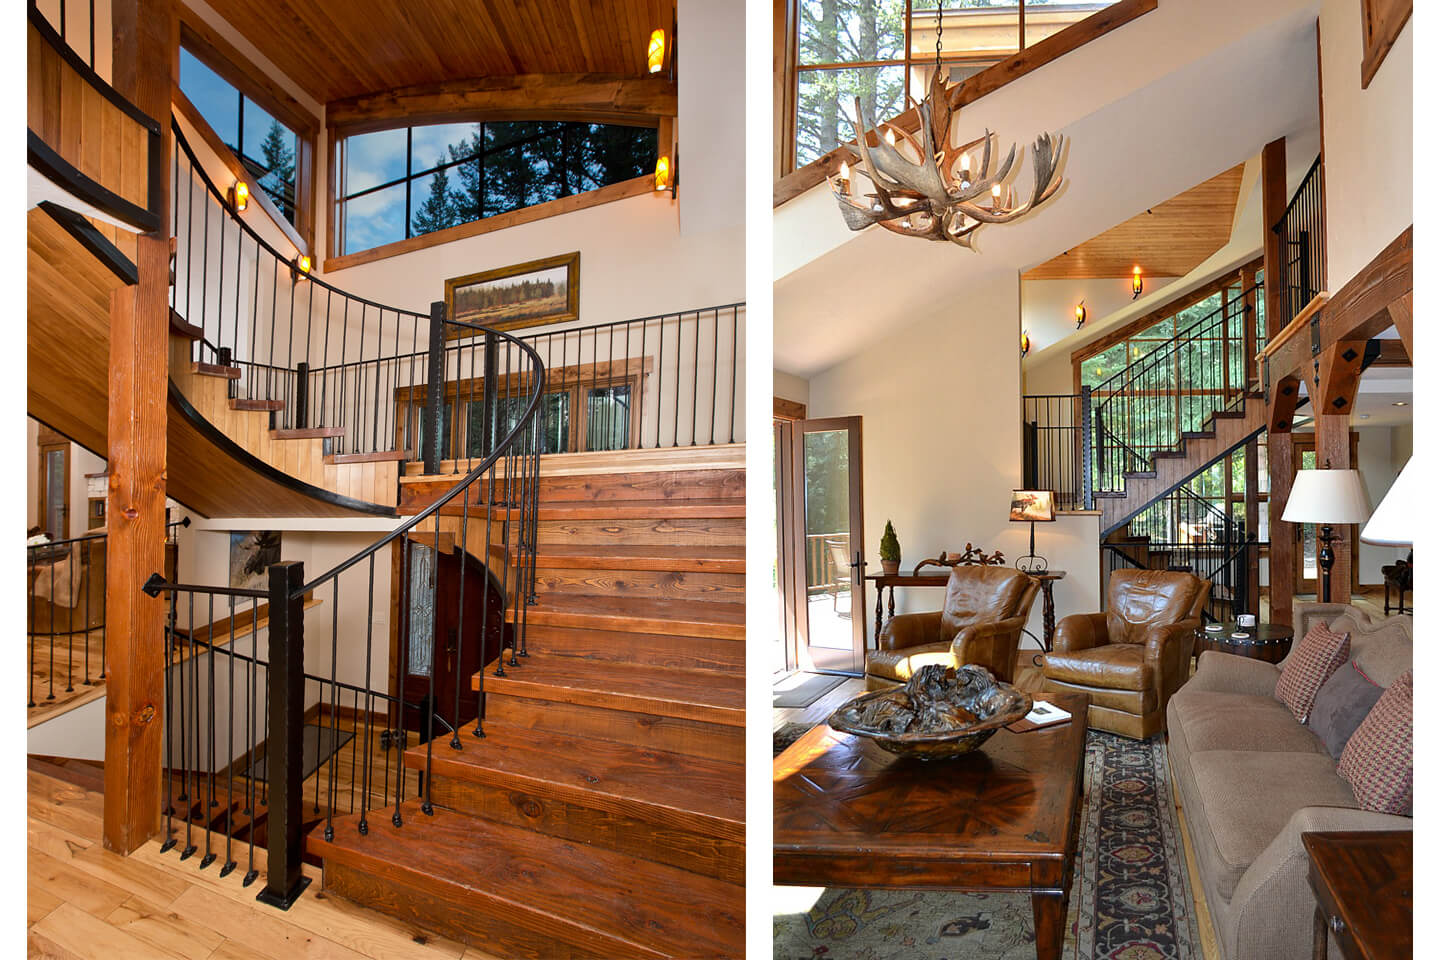 Spiral staircase and living room